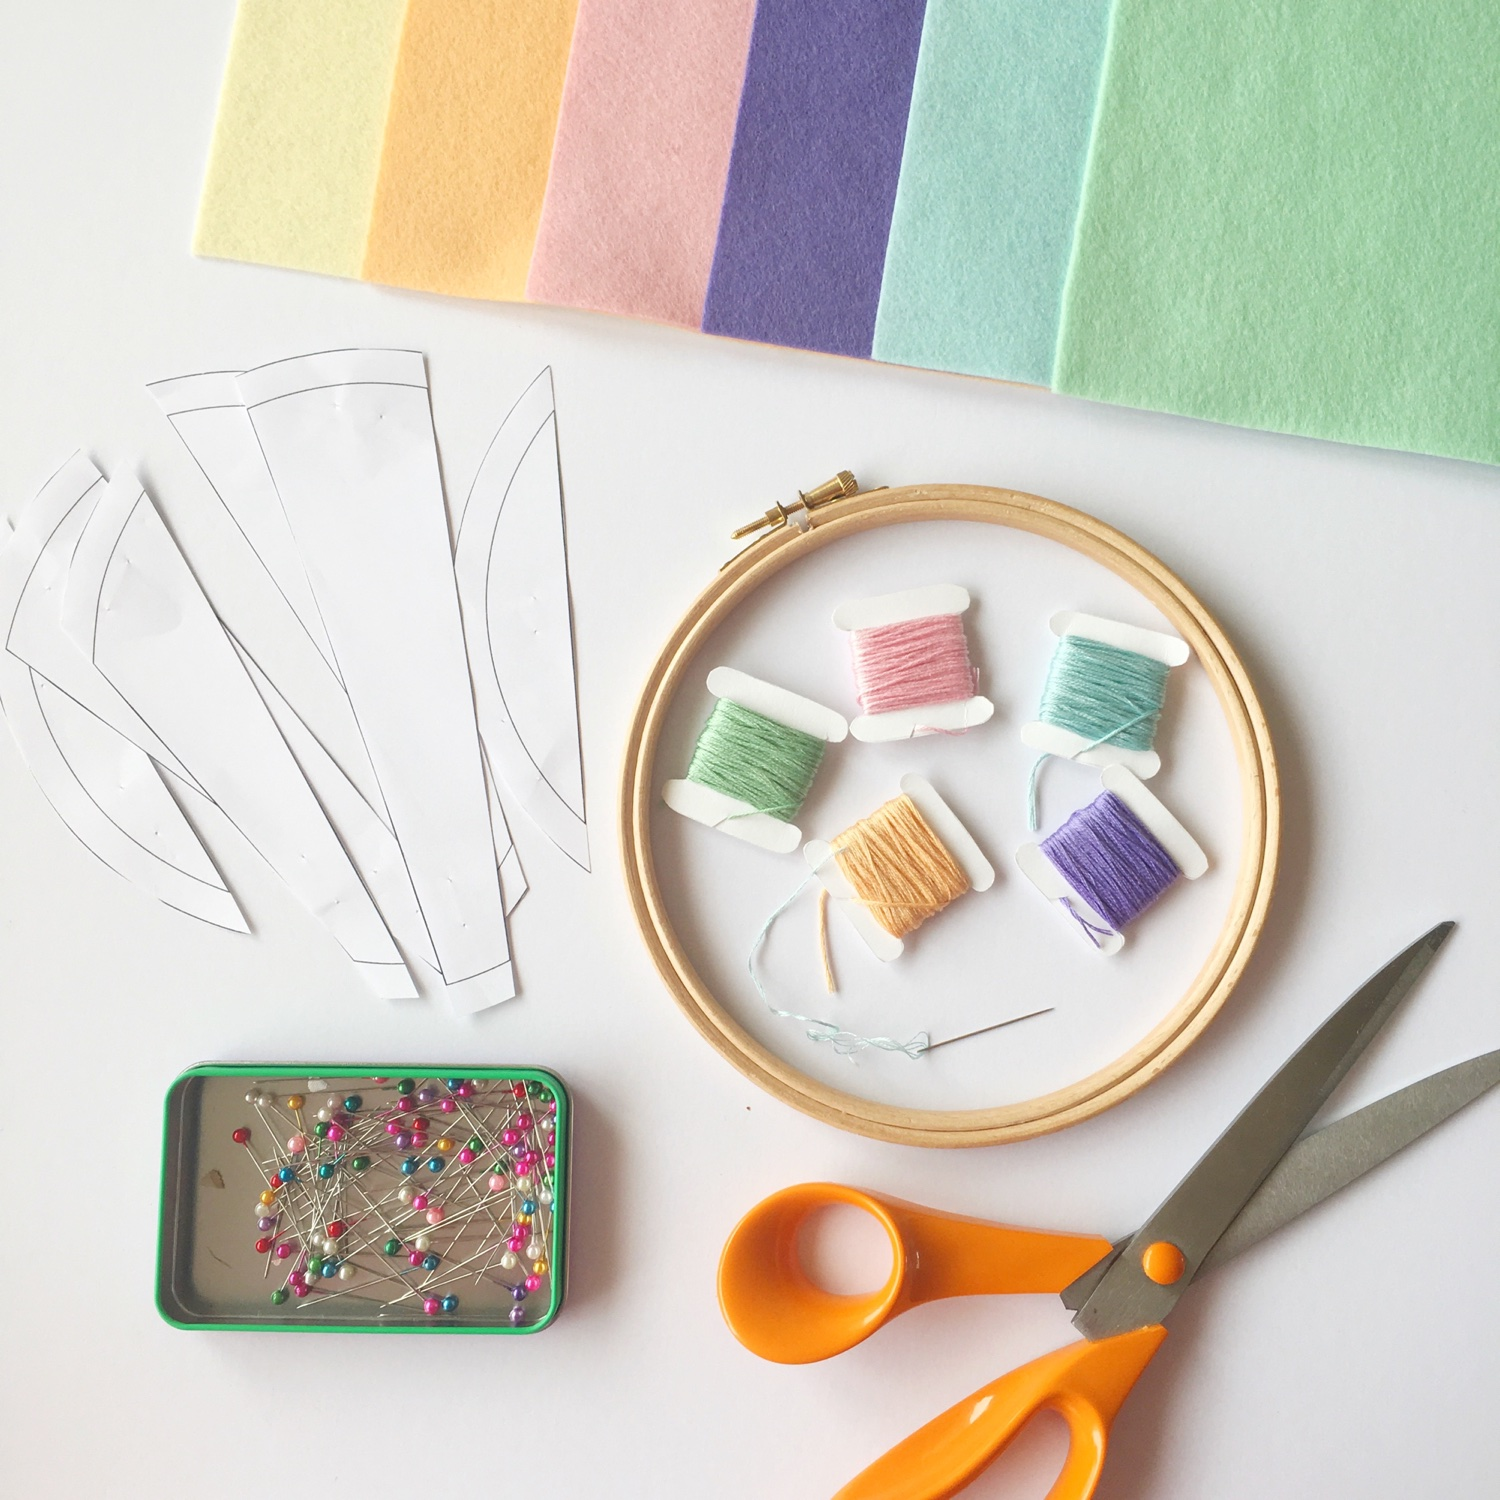 Crafty Colour Palette #2 pin hoop materials | Hello! Hooray!